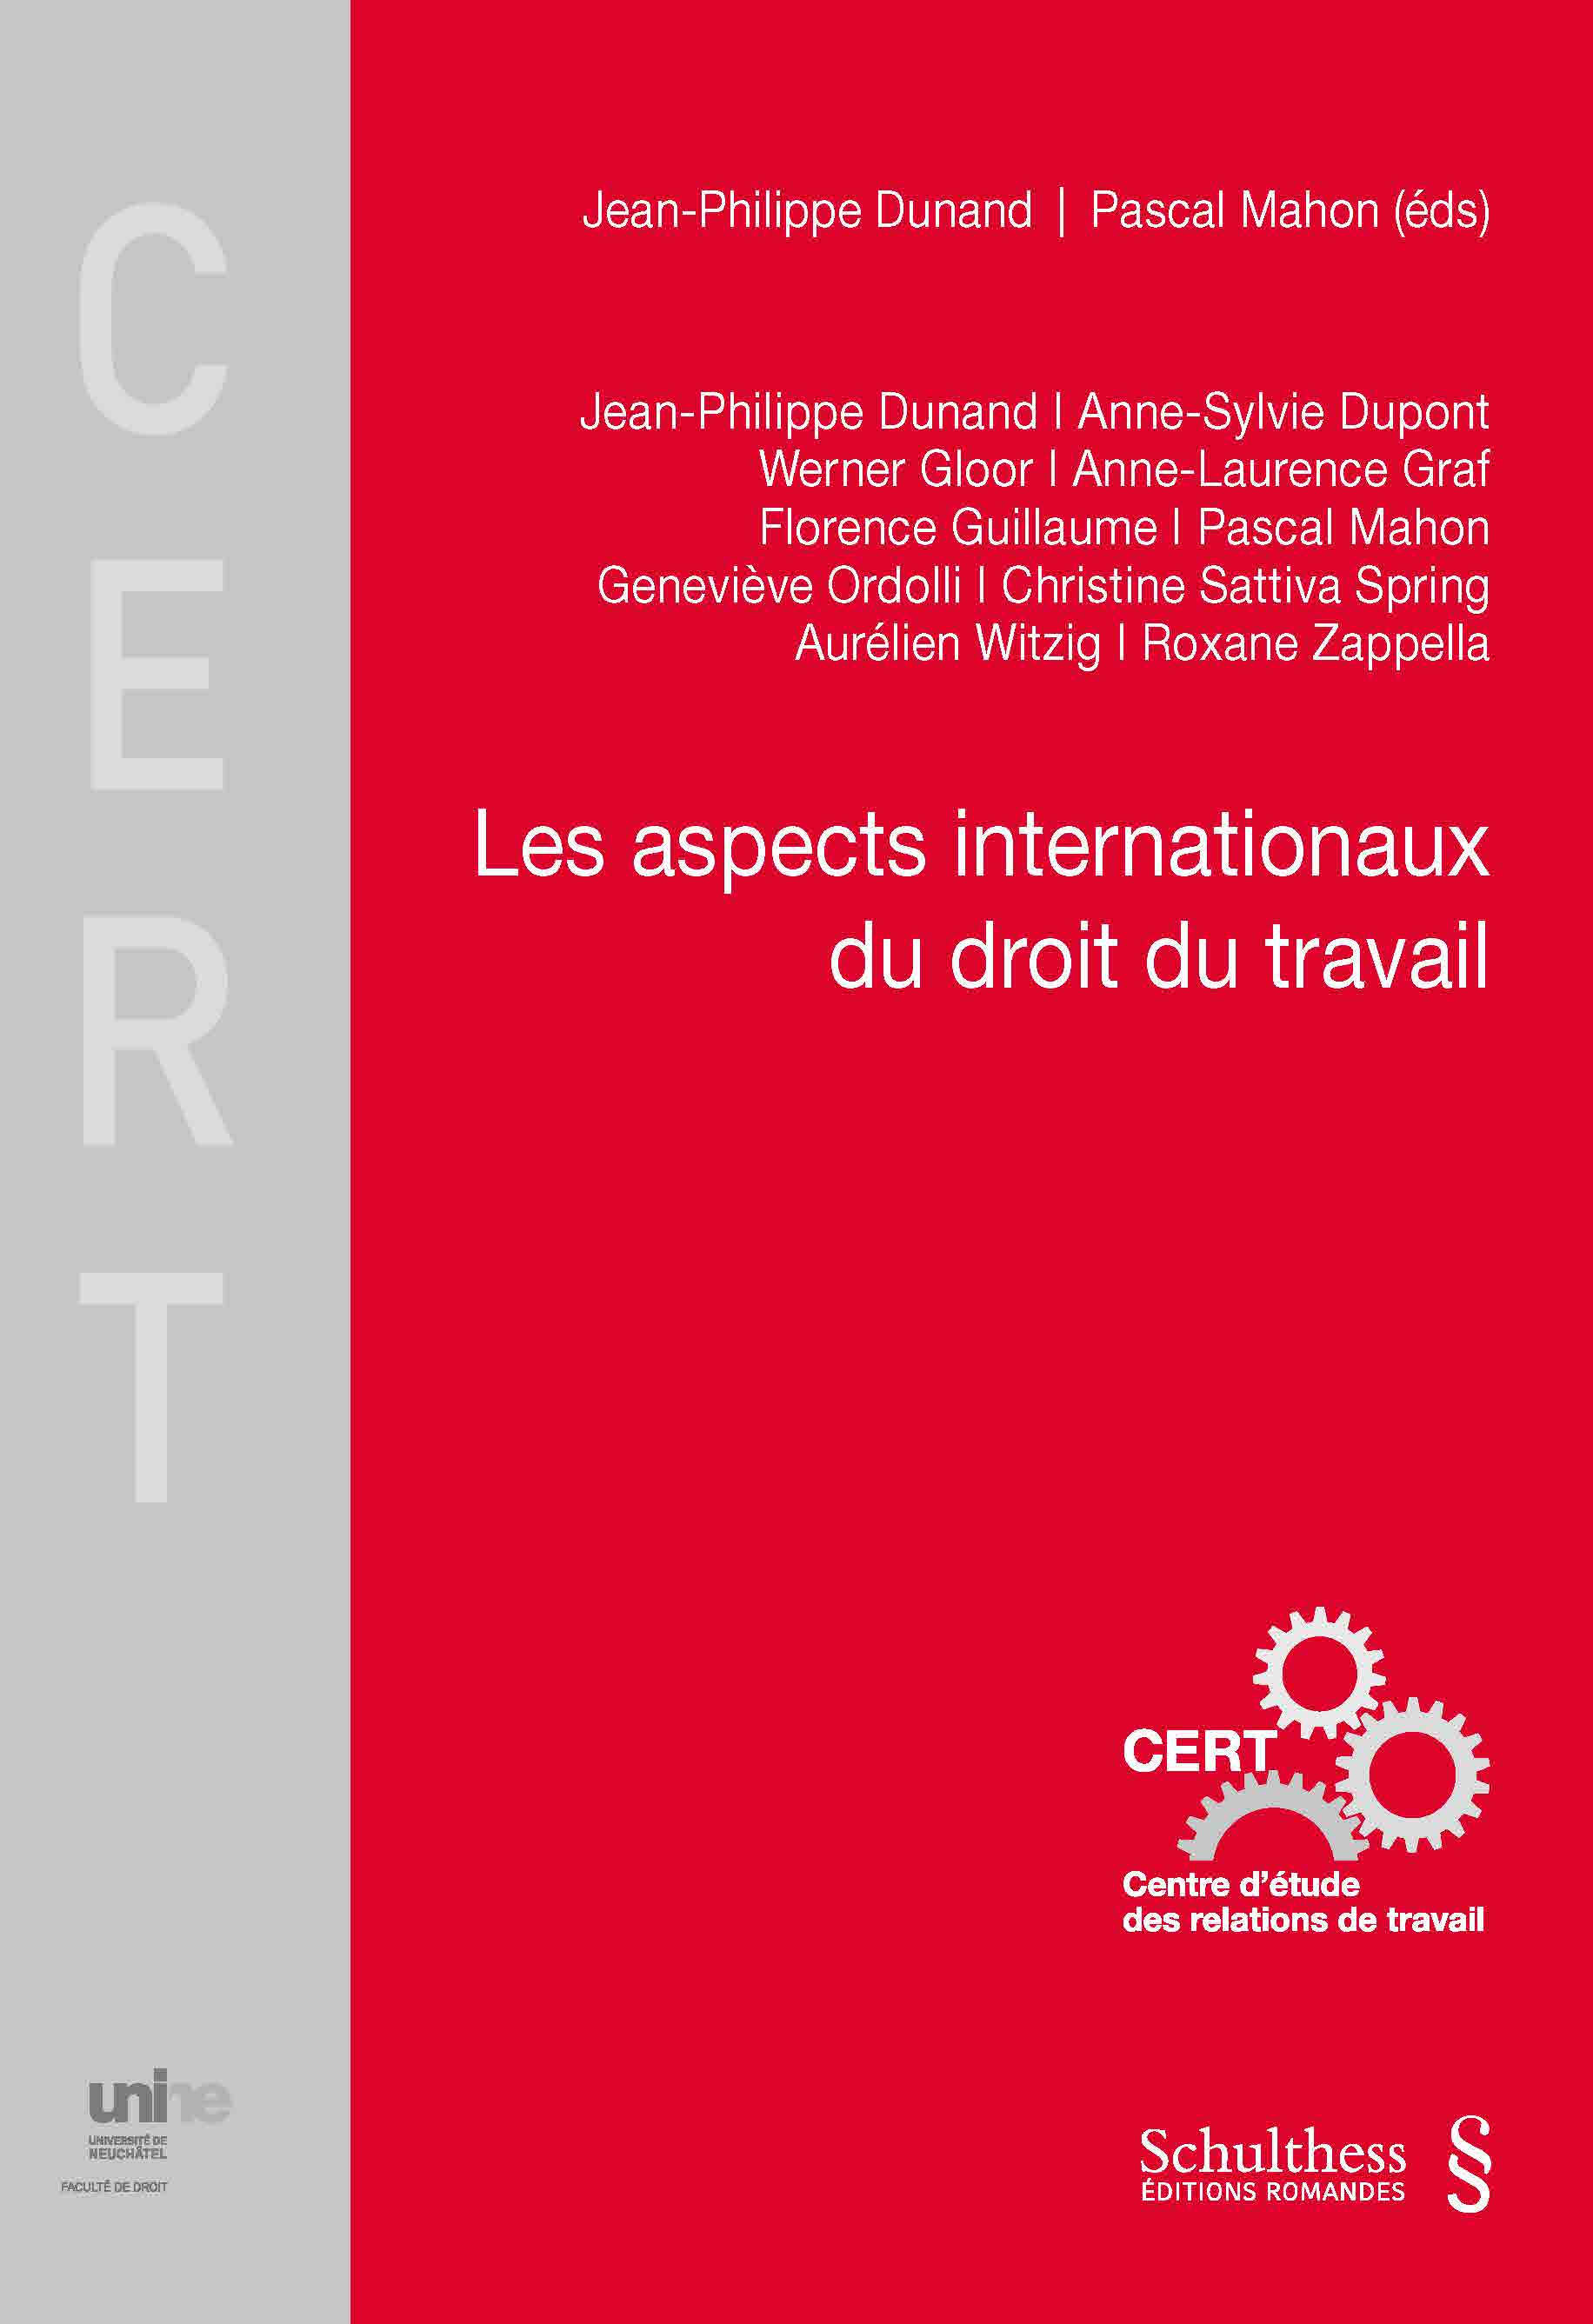 Les aspects internationaux en droit du travail